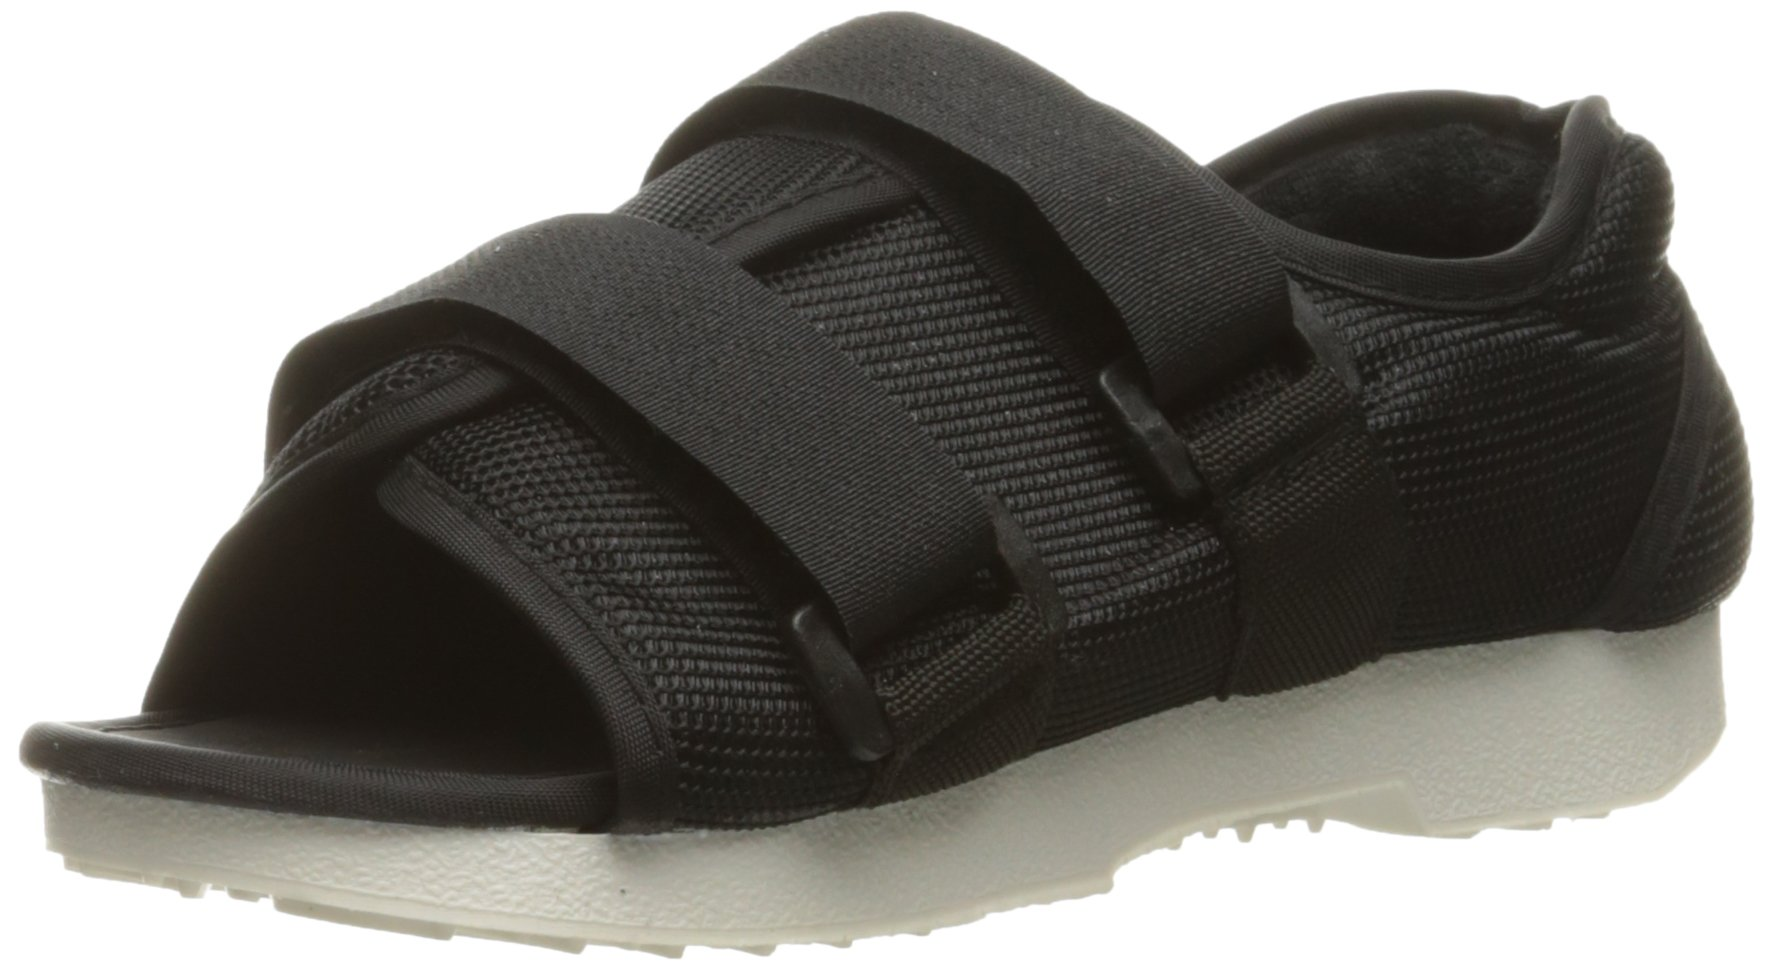 Procare 79-81143 Medical/Surgical Shoe, Women's, Small by ProCare